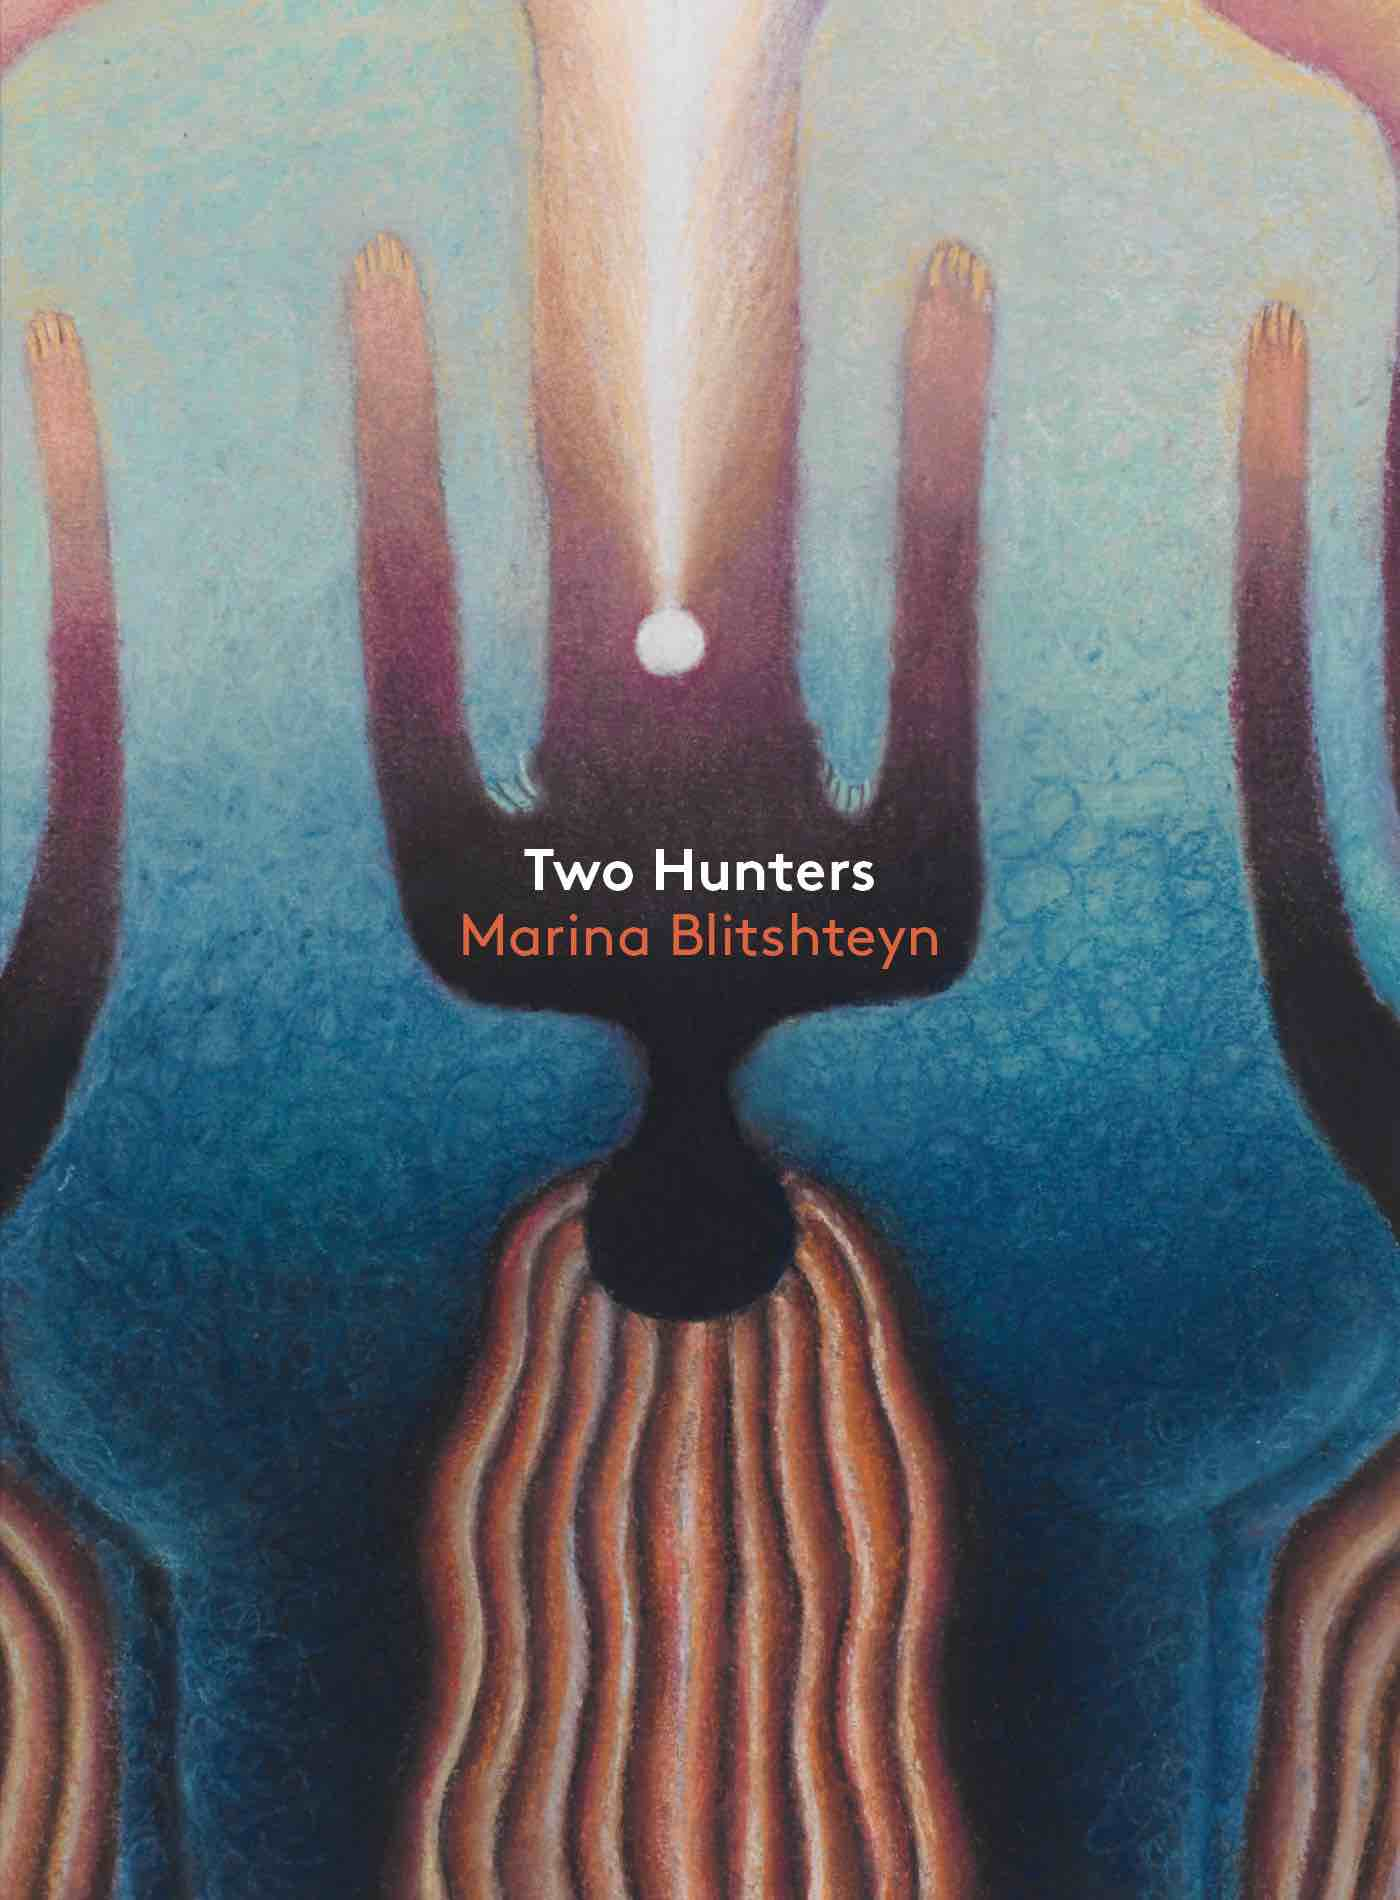 Poetry Book Launch: Two Hunters by Marina Blitshteyn